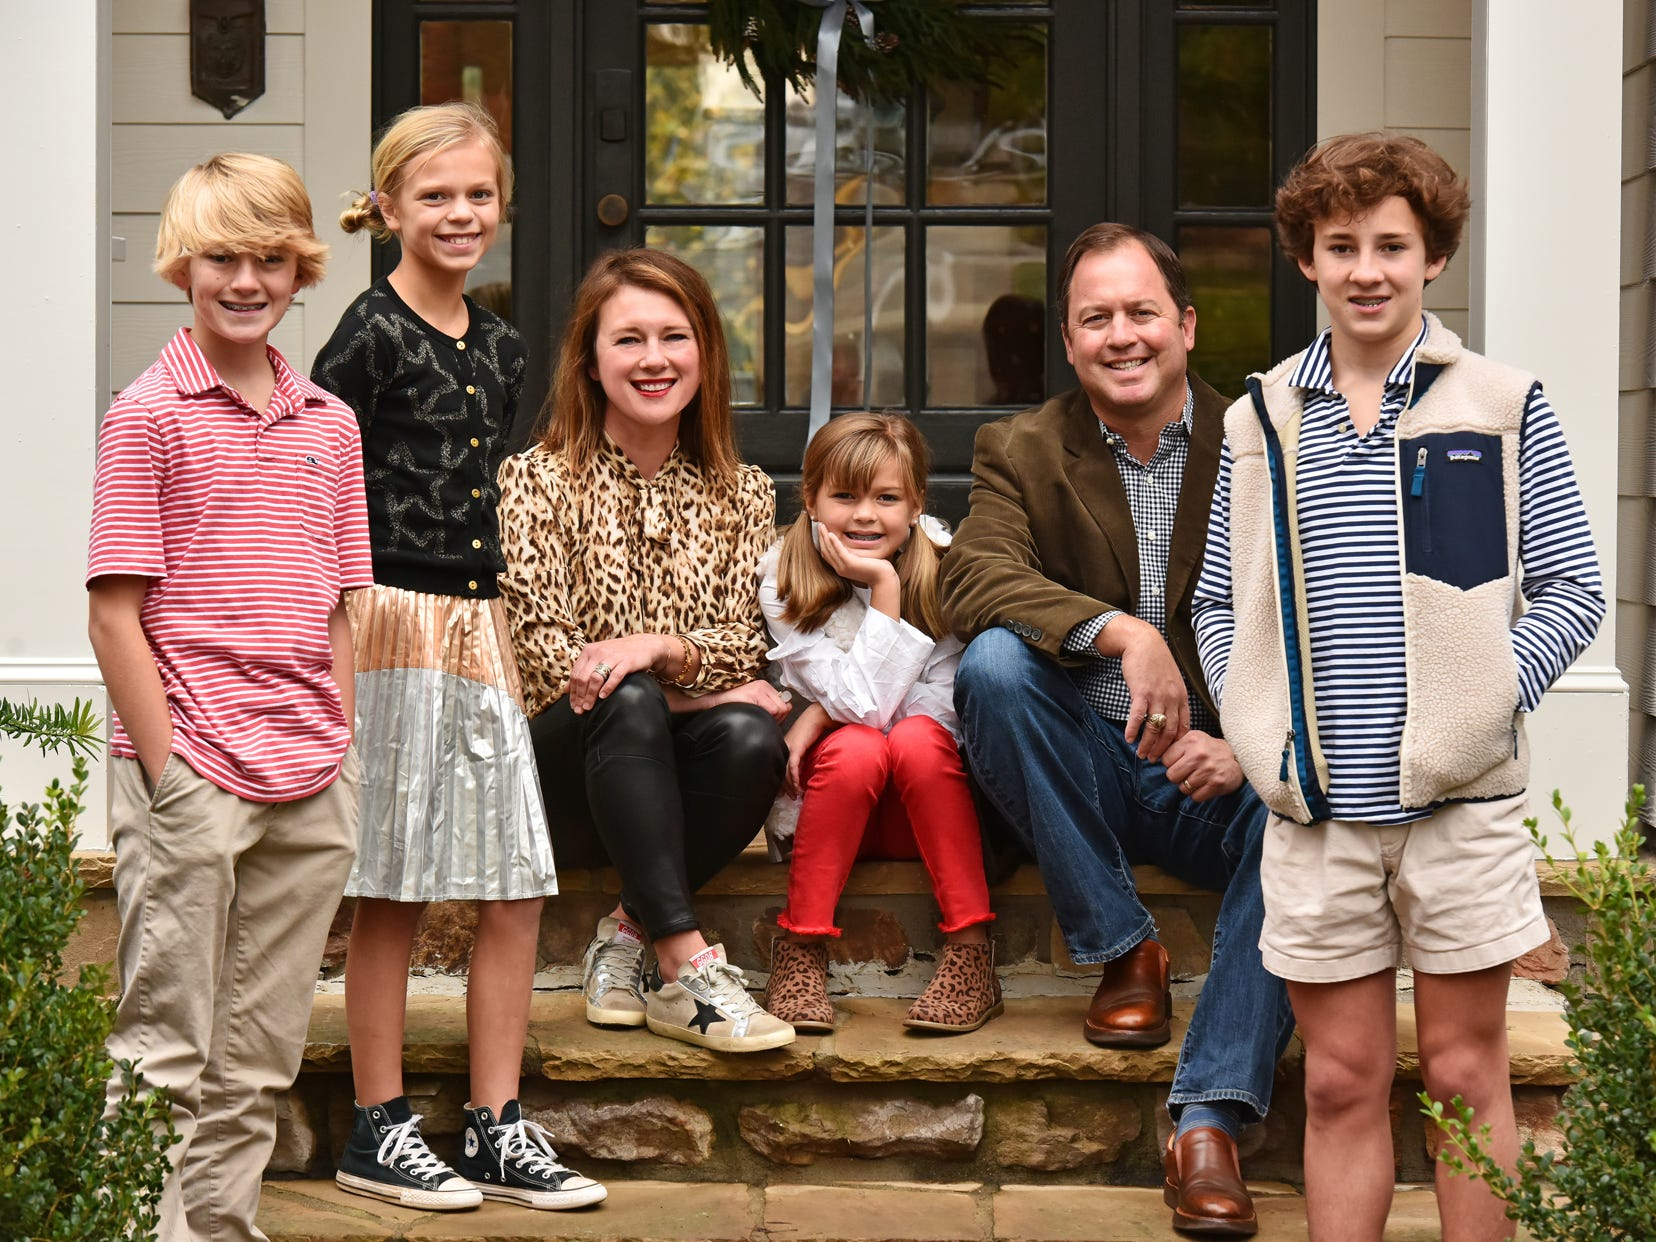 Michele and Jeff Johnson have combined their families and started new holiday traditions. From left, Hayes Dickens,11, Leira Johnson, 10, Michele Johnson, Edie Johnson, 8, Jeff Johnson, and Witt Dickens, 14.